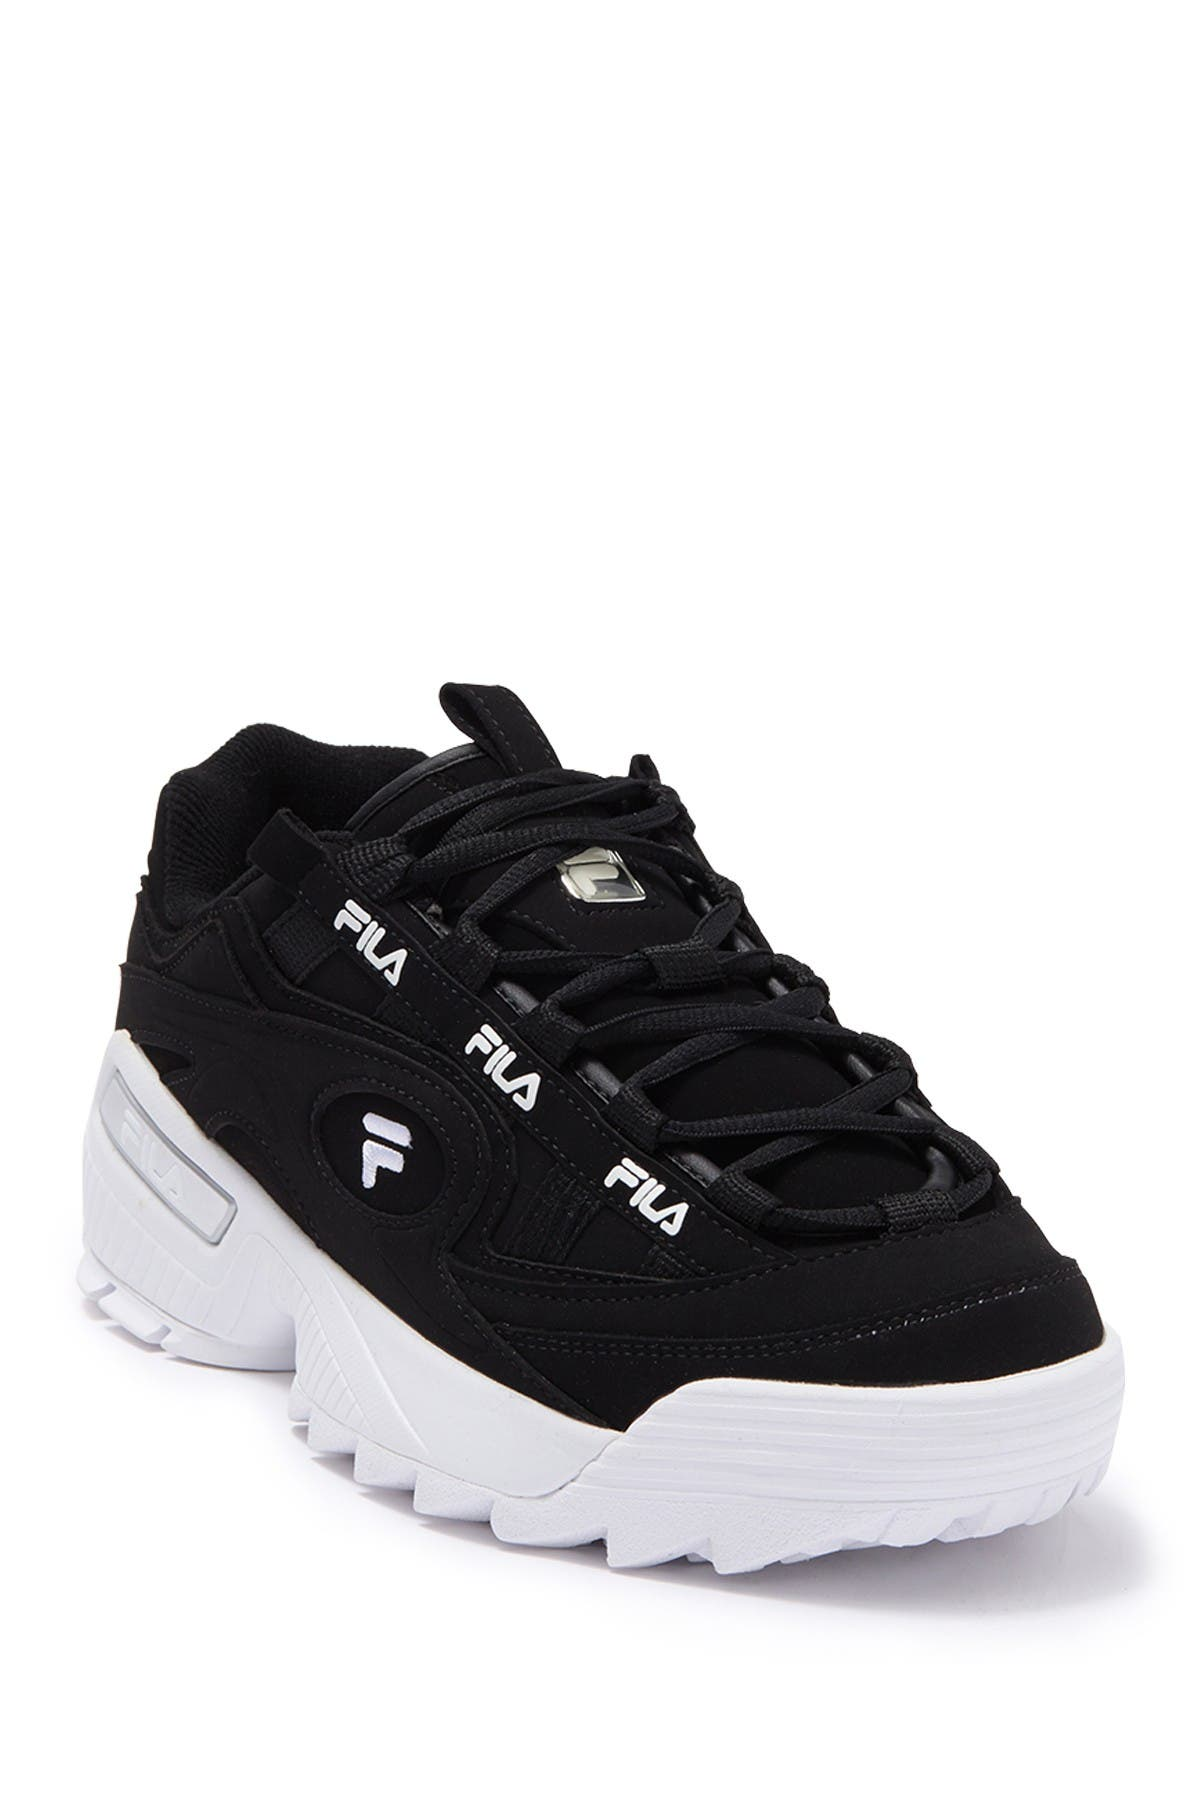 Image of FILA USA D-Formation Chunky Sole Sneaker